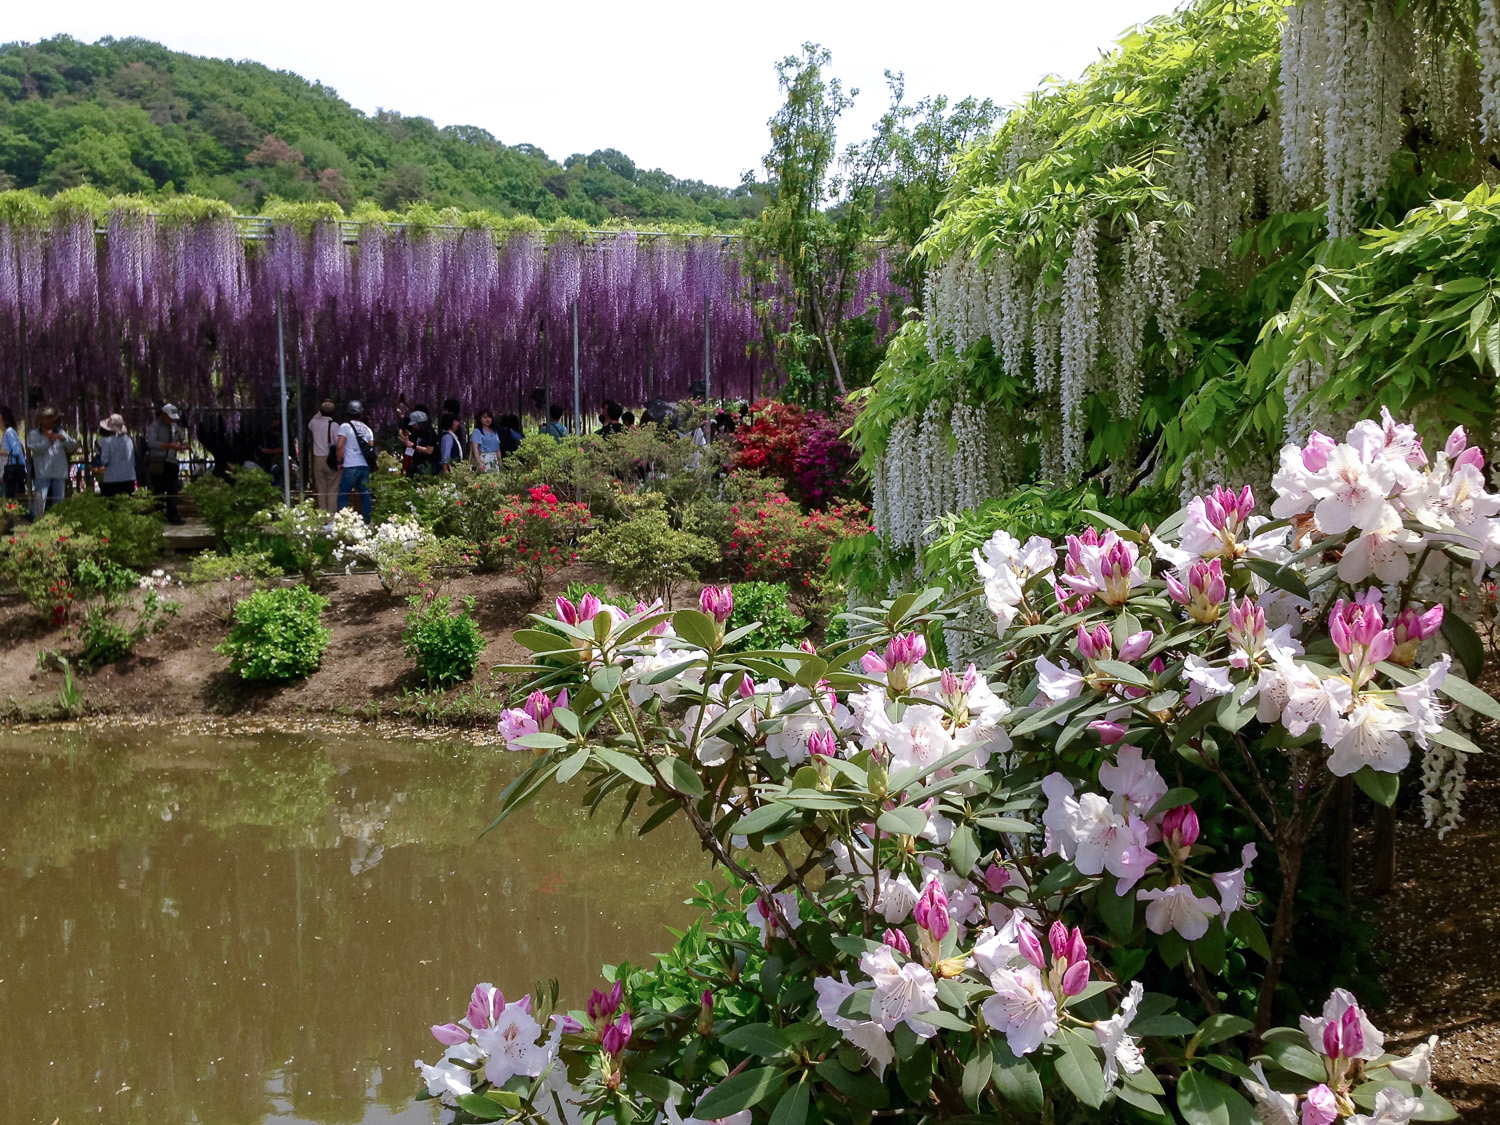 Azaleas are in flower at the same time as the wisterias. Image:  © David Astley